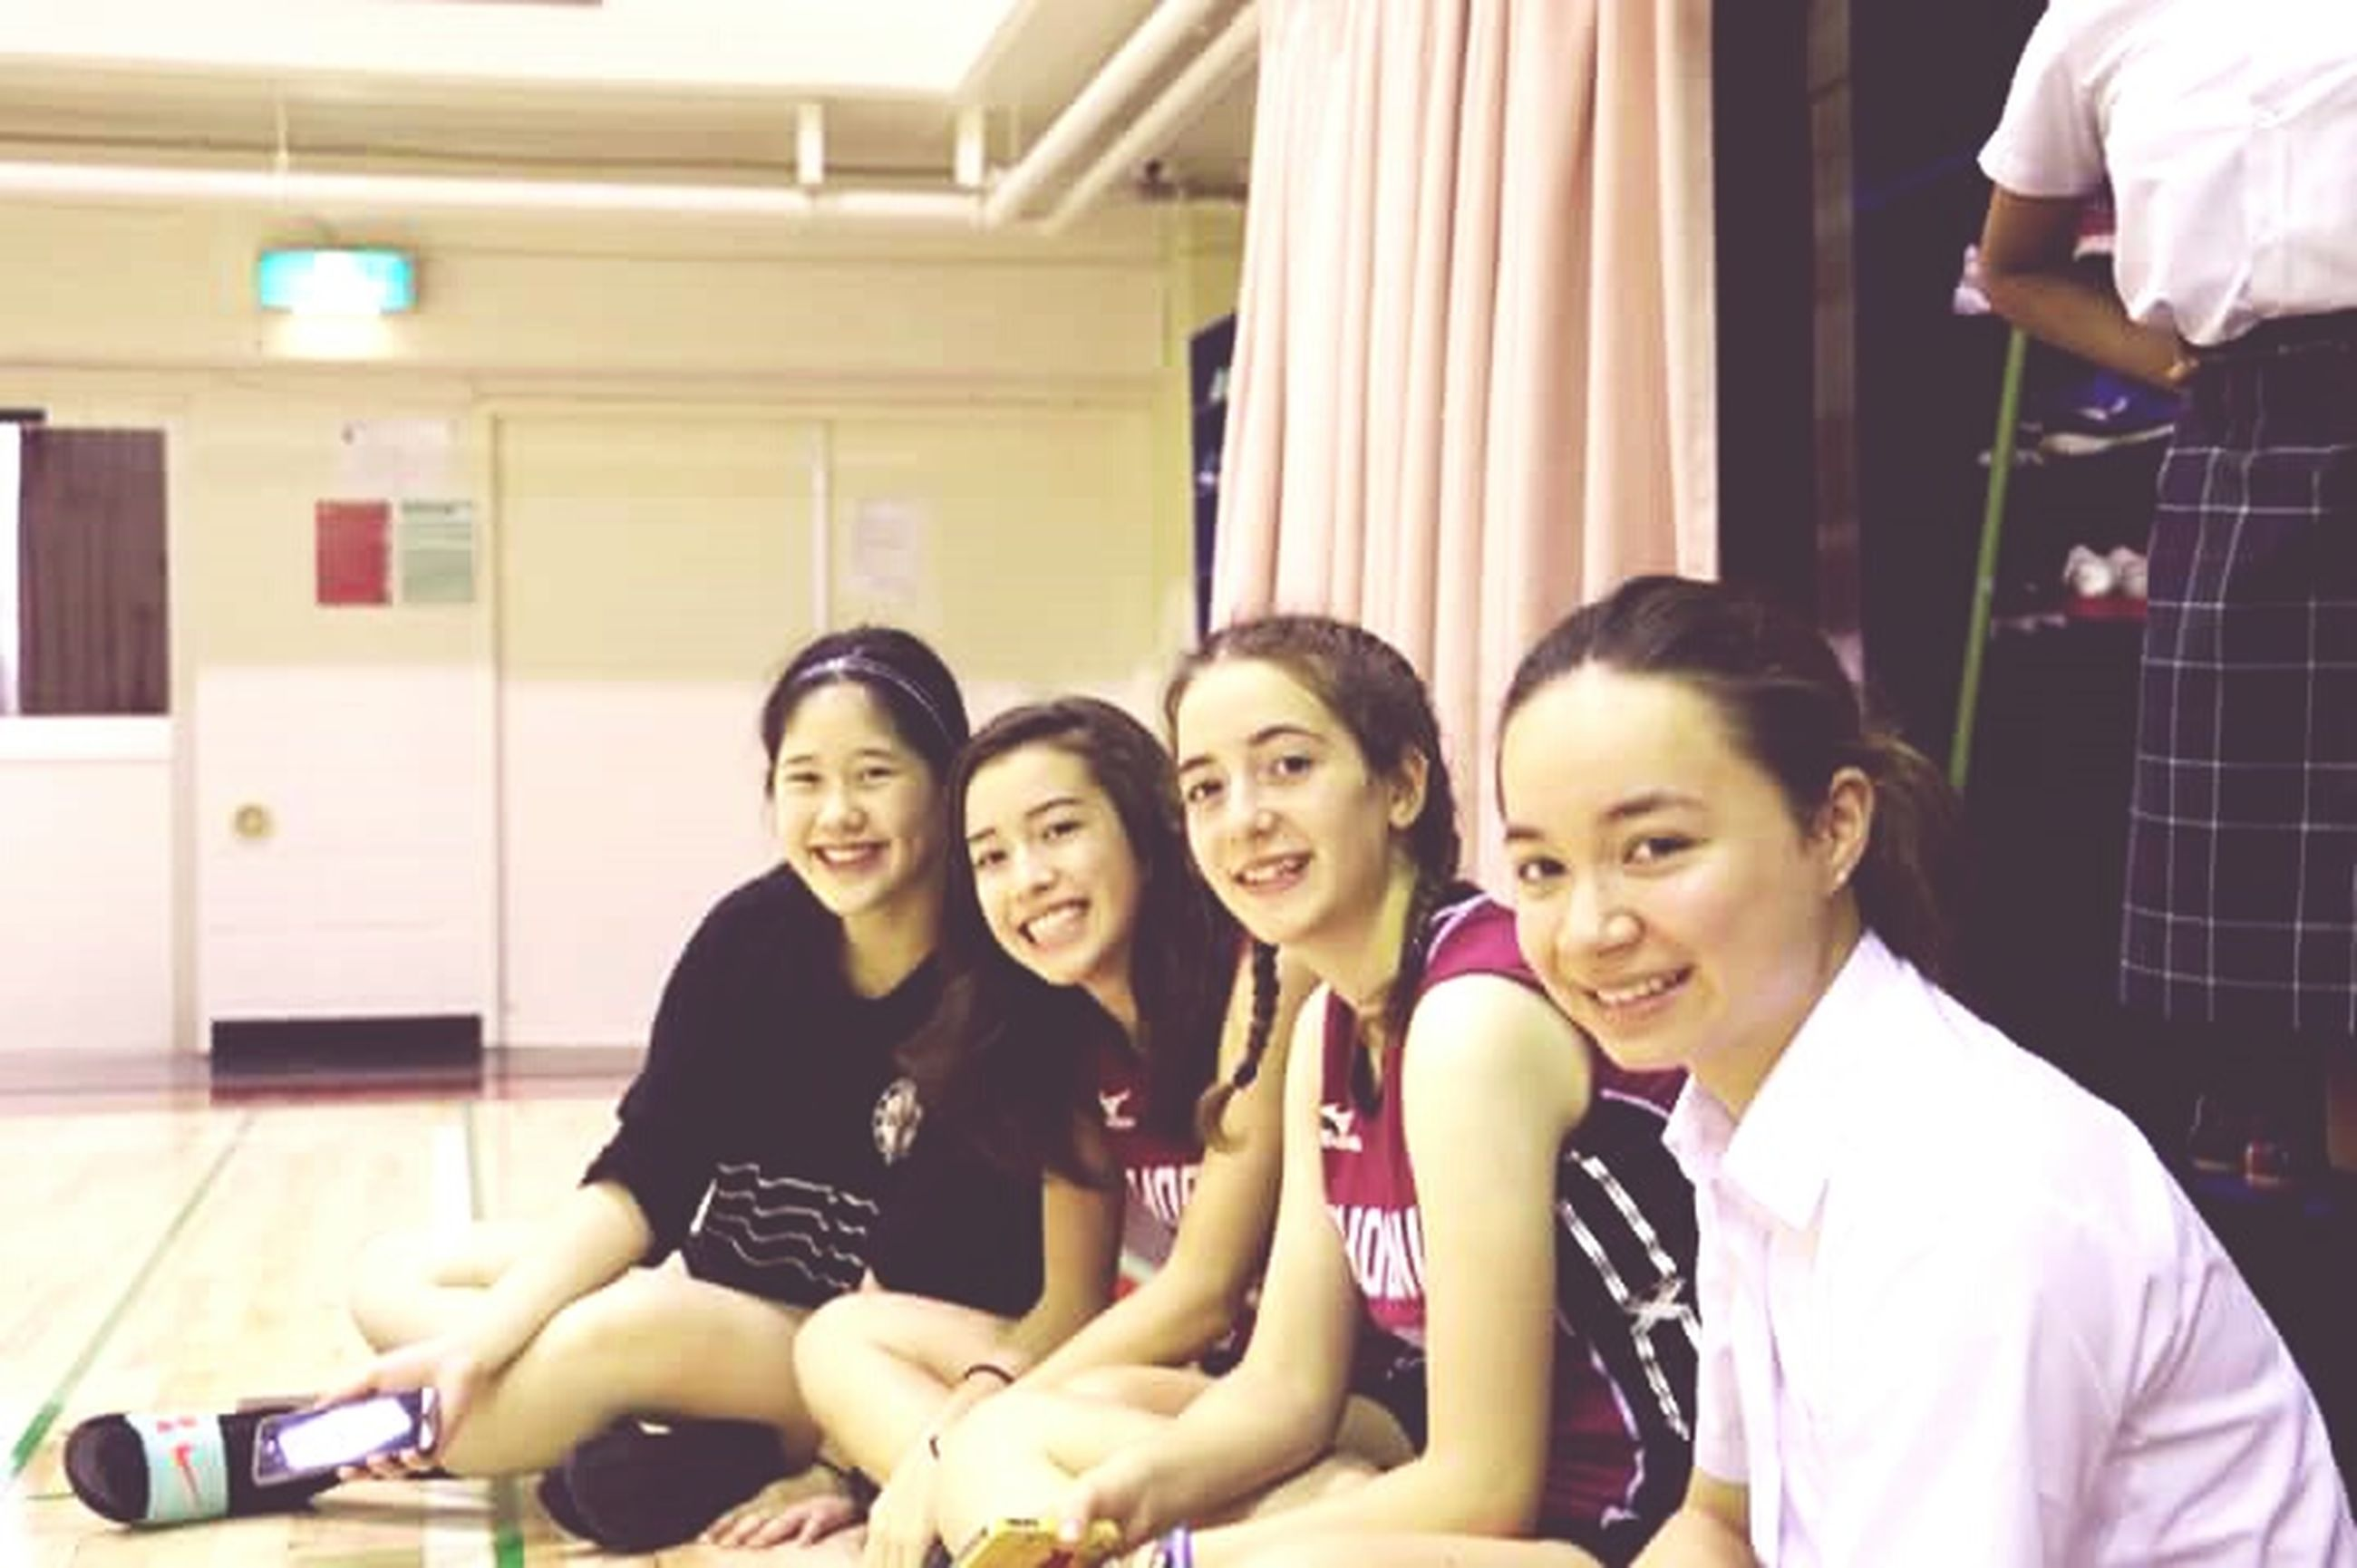 togetherness, leisure activity, lifestyles, bonding, friendship, standing, young women, young adult, teenage girls, indoors, happiness, casual clothing, person, friend, teenage boys, friends, looking